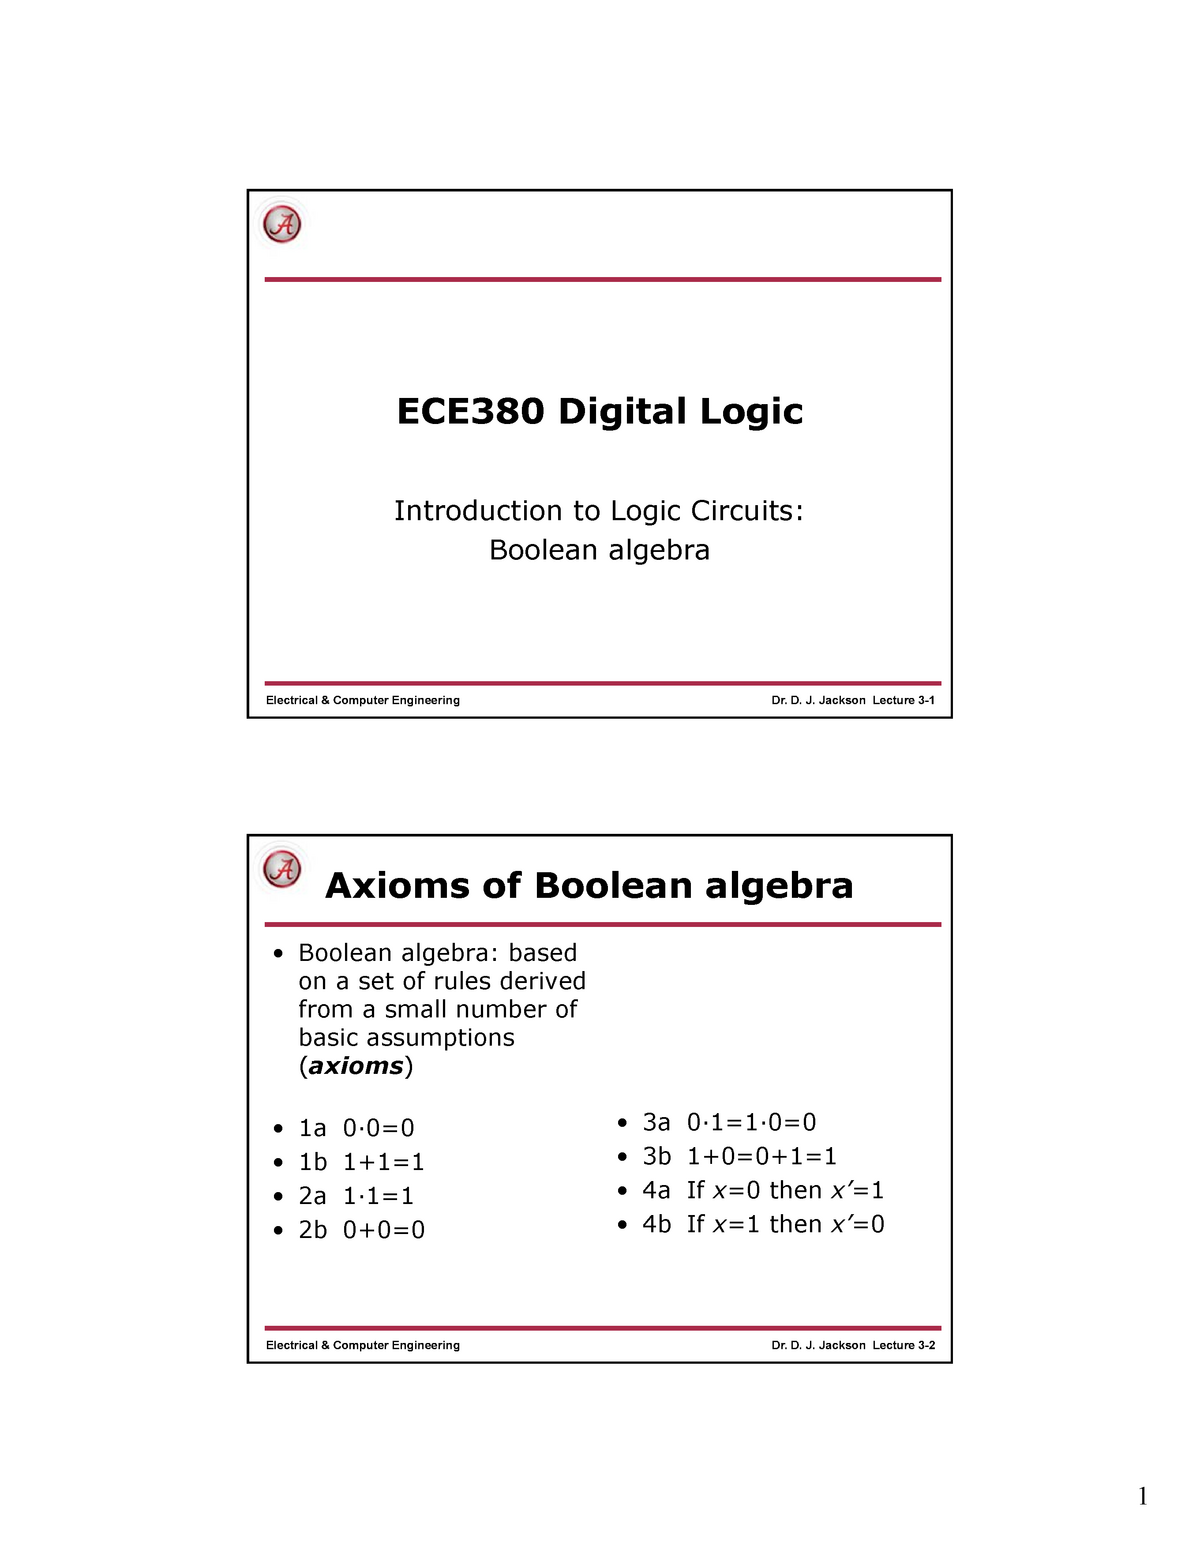 Lec 3 - Introduction to Logic Circuits: Boolean algebra